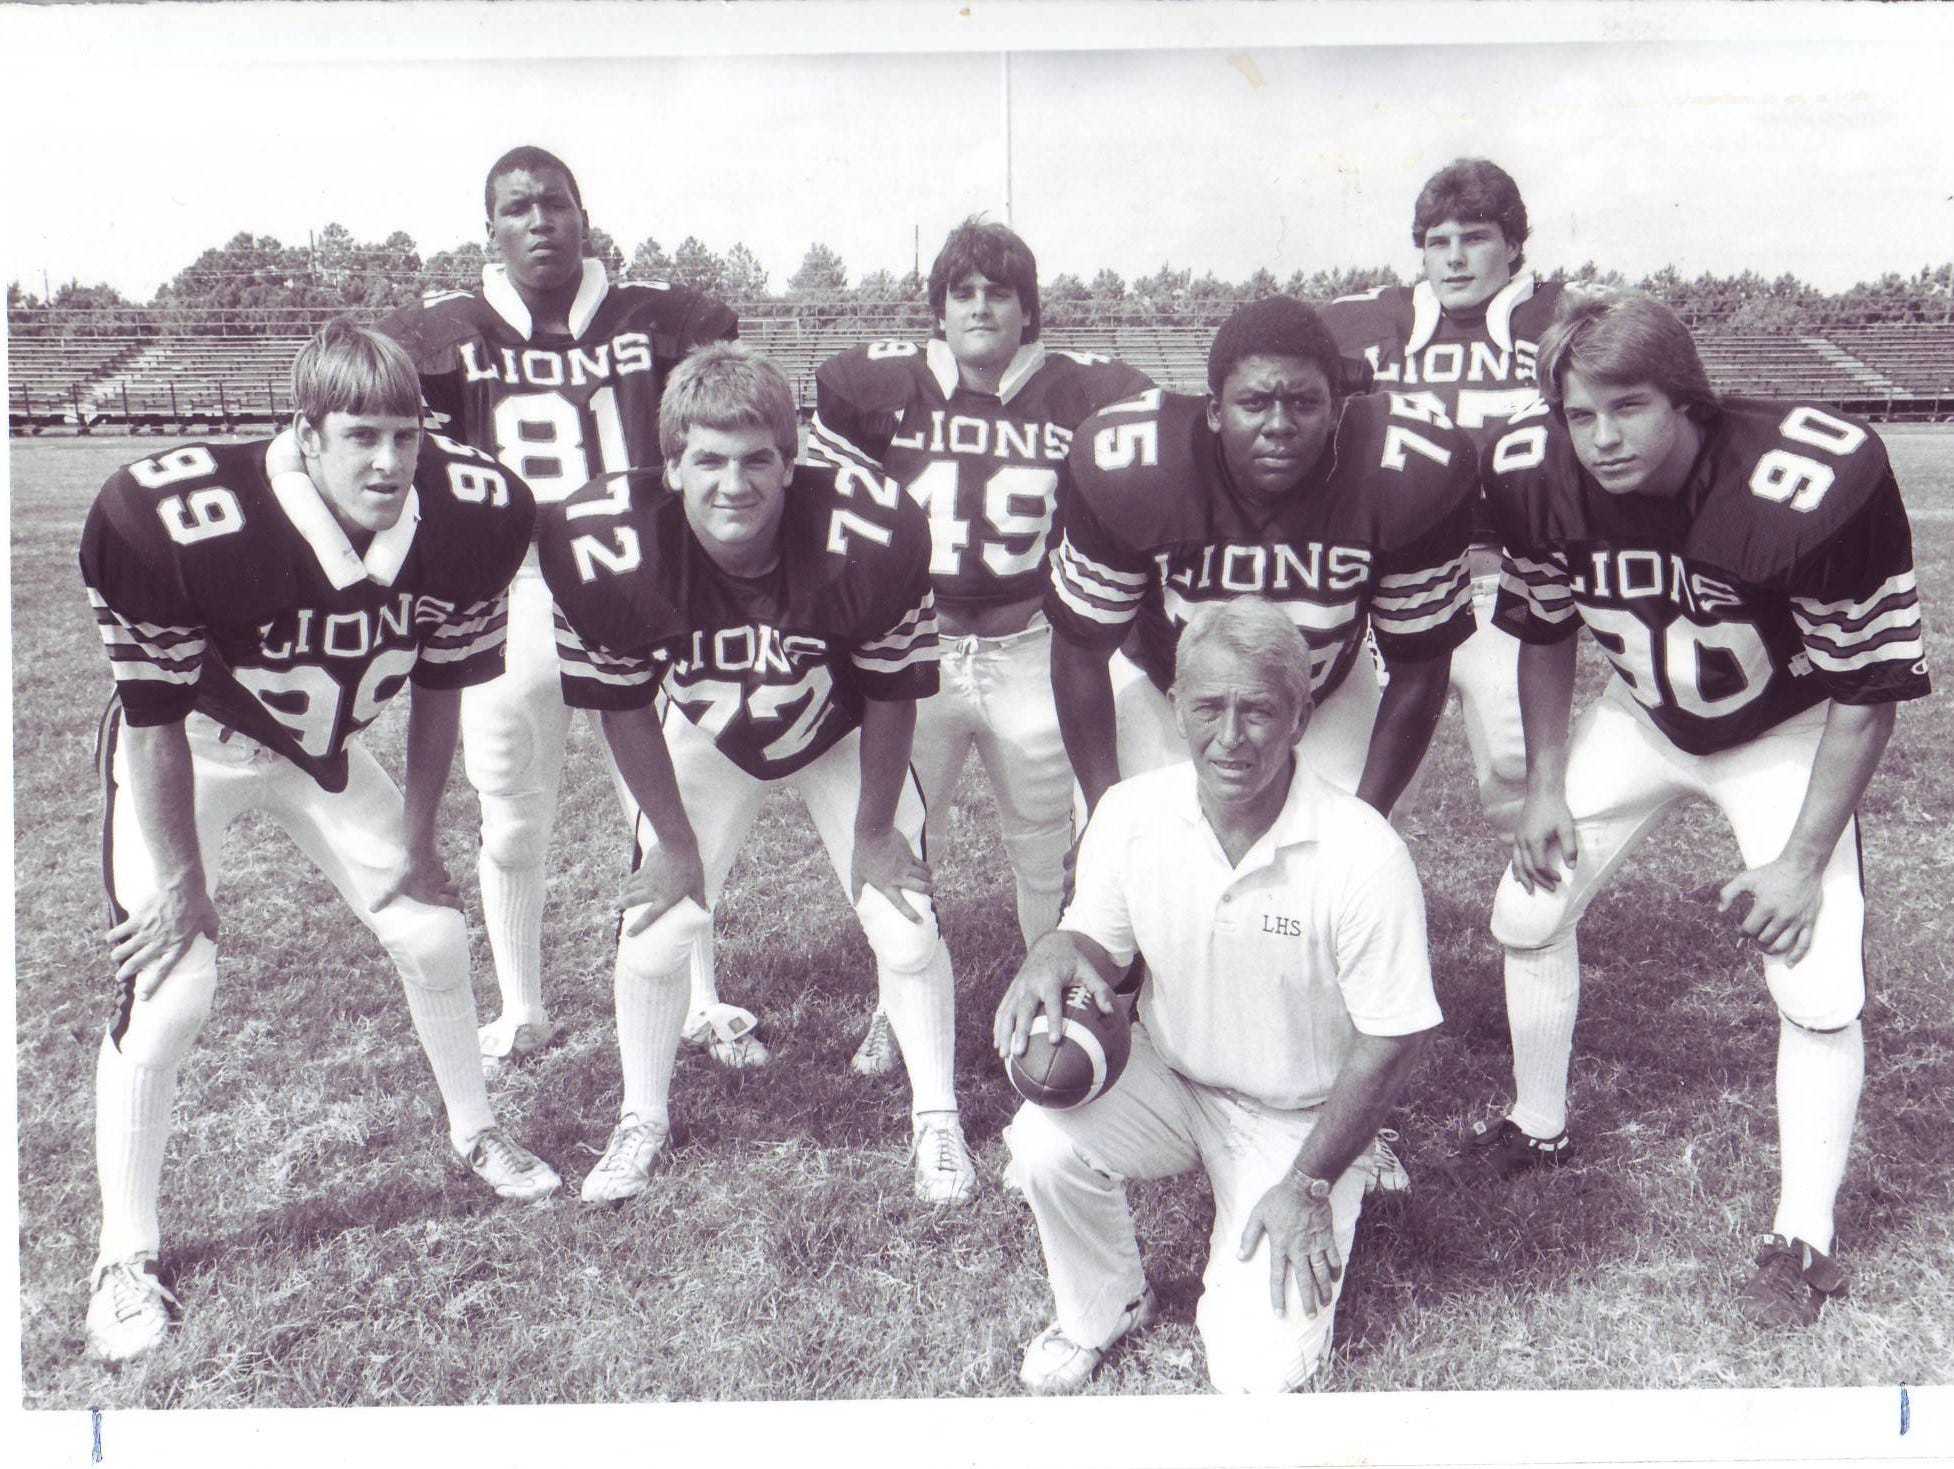 Former Lafayette High assistant coach Frank Barousse with his Mighty Lion defensive front in the early 1980s, led by standout linebackers Cedric Figaro, back left, and Randy Guidry, back right.